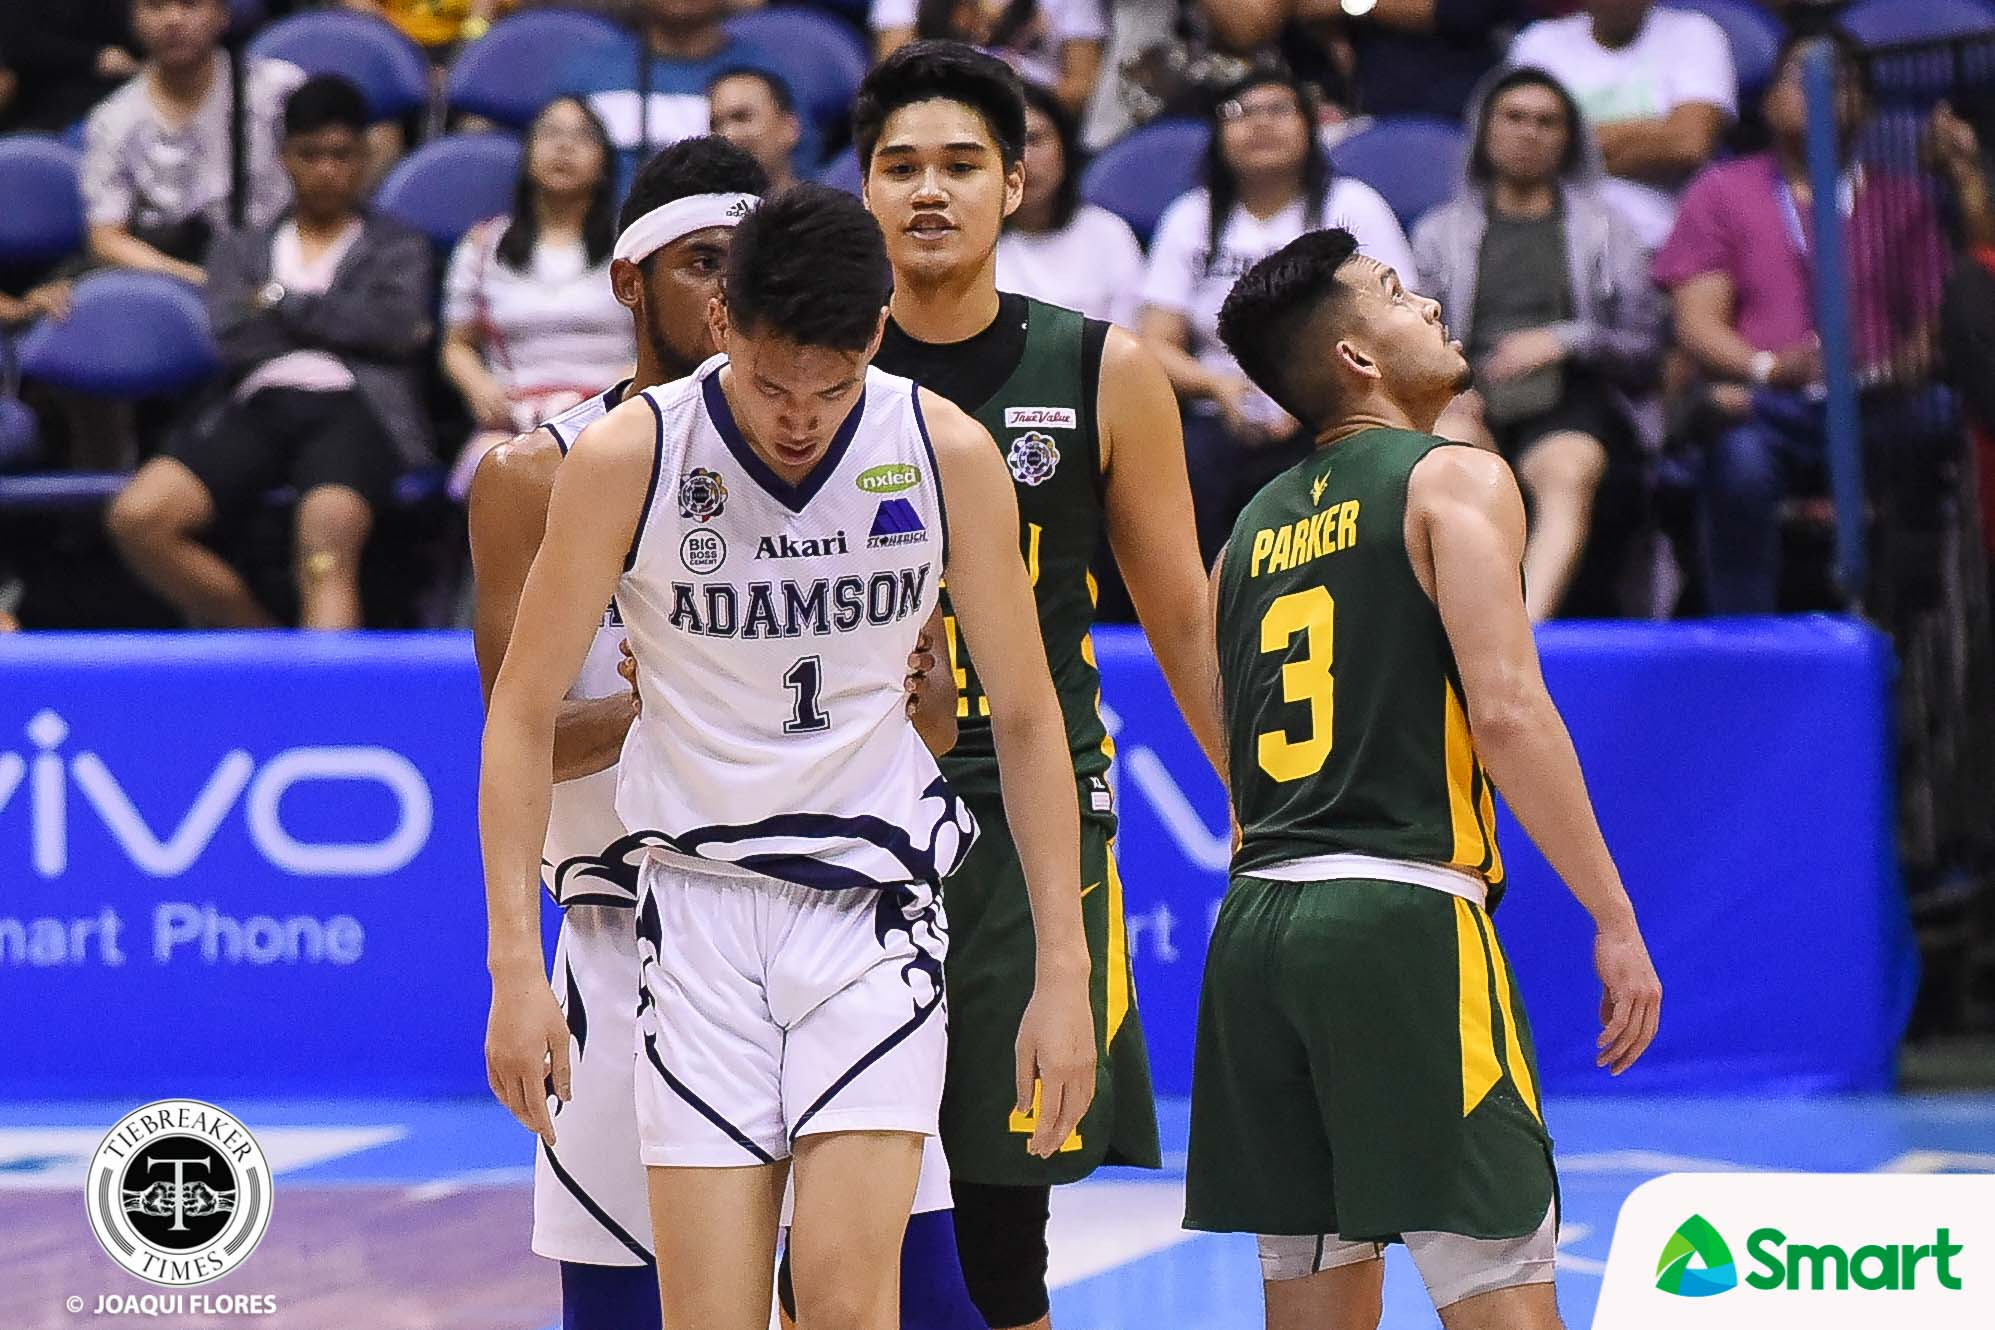 Tiebreaker Times For second straight year, Arvin Tolentino called for DQ foul against an Adamson player Basketball FEU News UAAP  UAAP Season 81 Men's Basketball UAAP Season 81 FEU Men's Basketball Arvin Tolentino